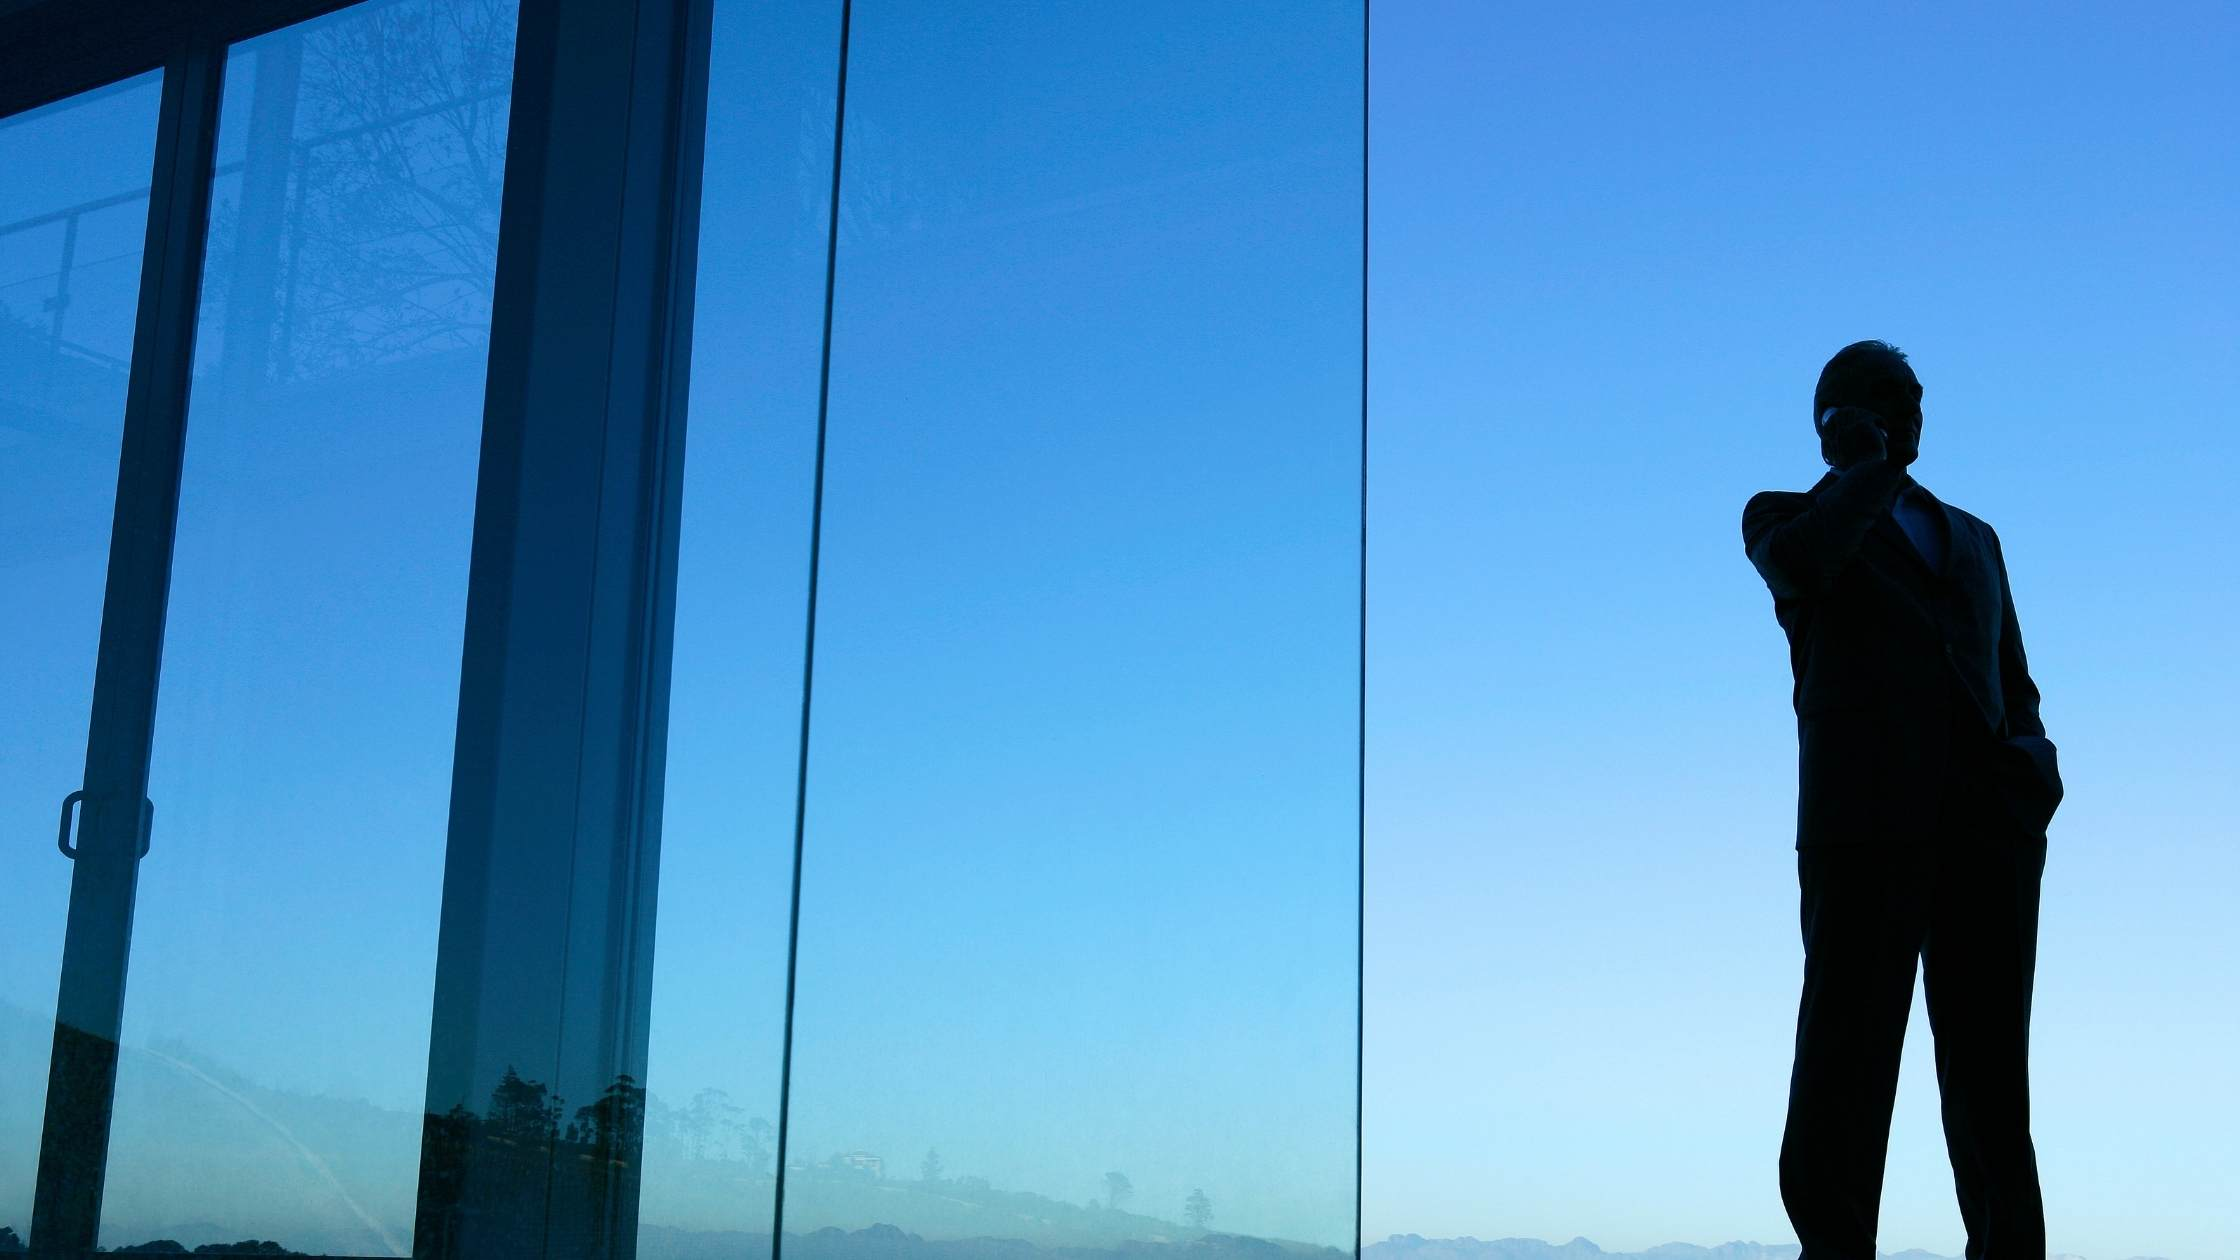 Silhouette of man talking on mobile phone in front of glass house